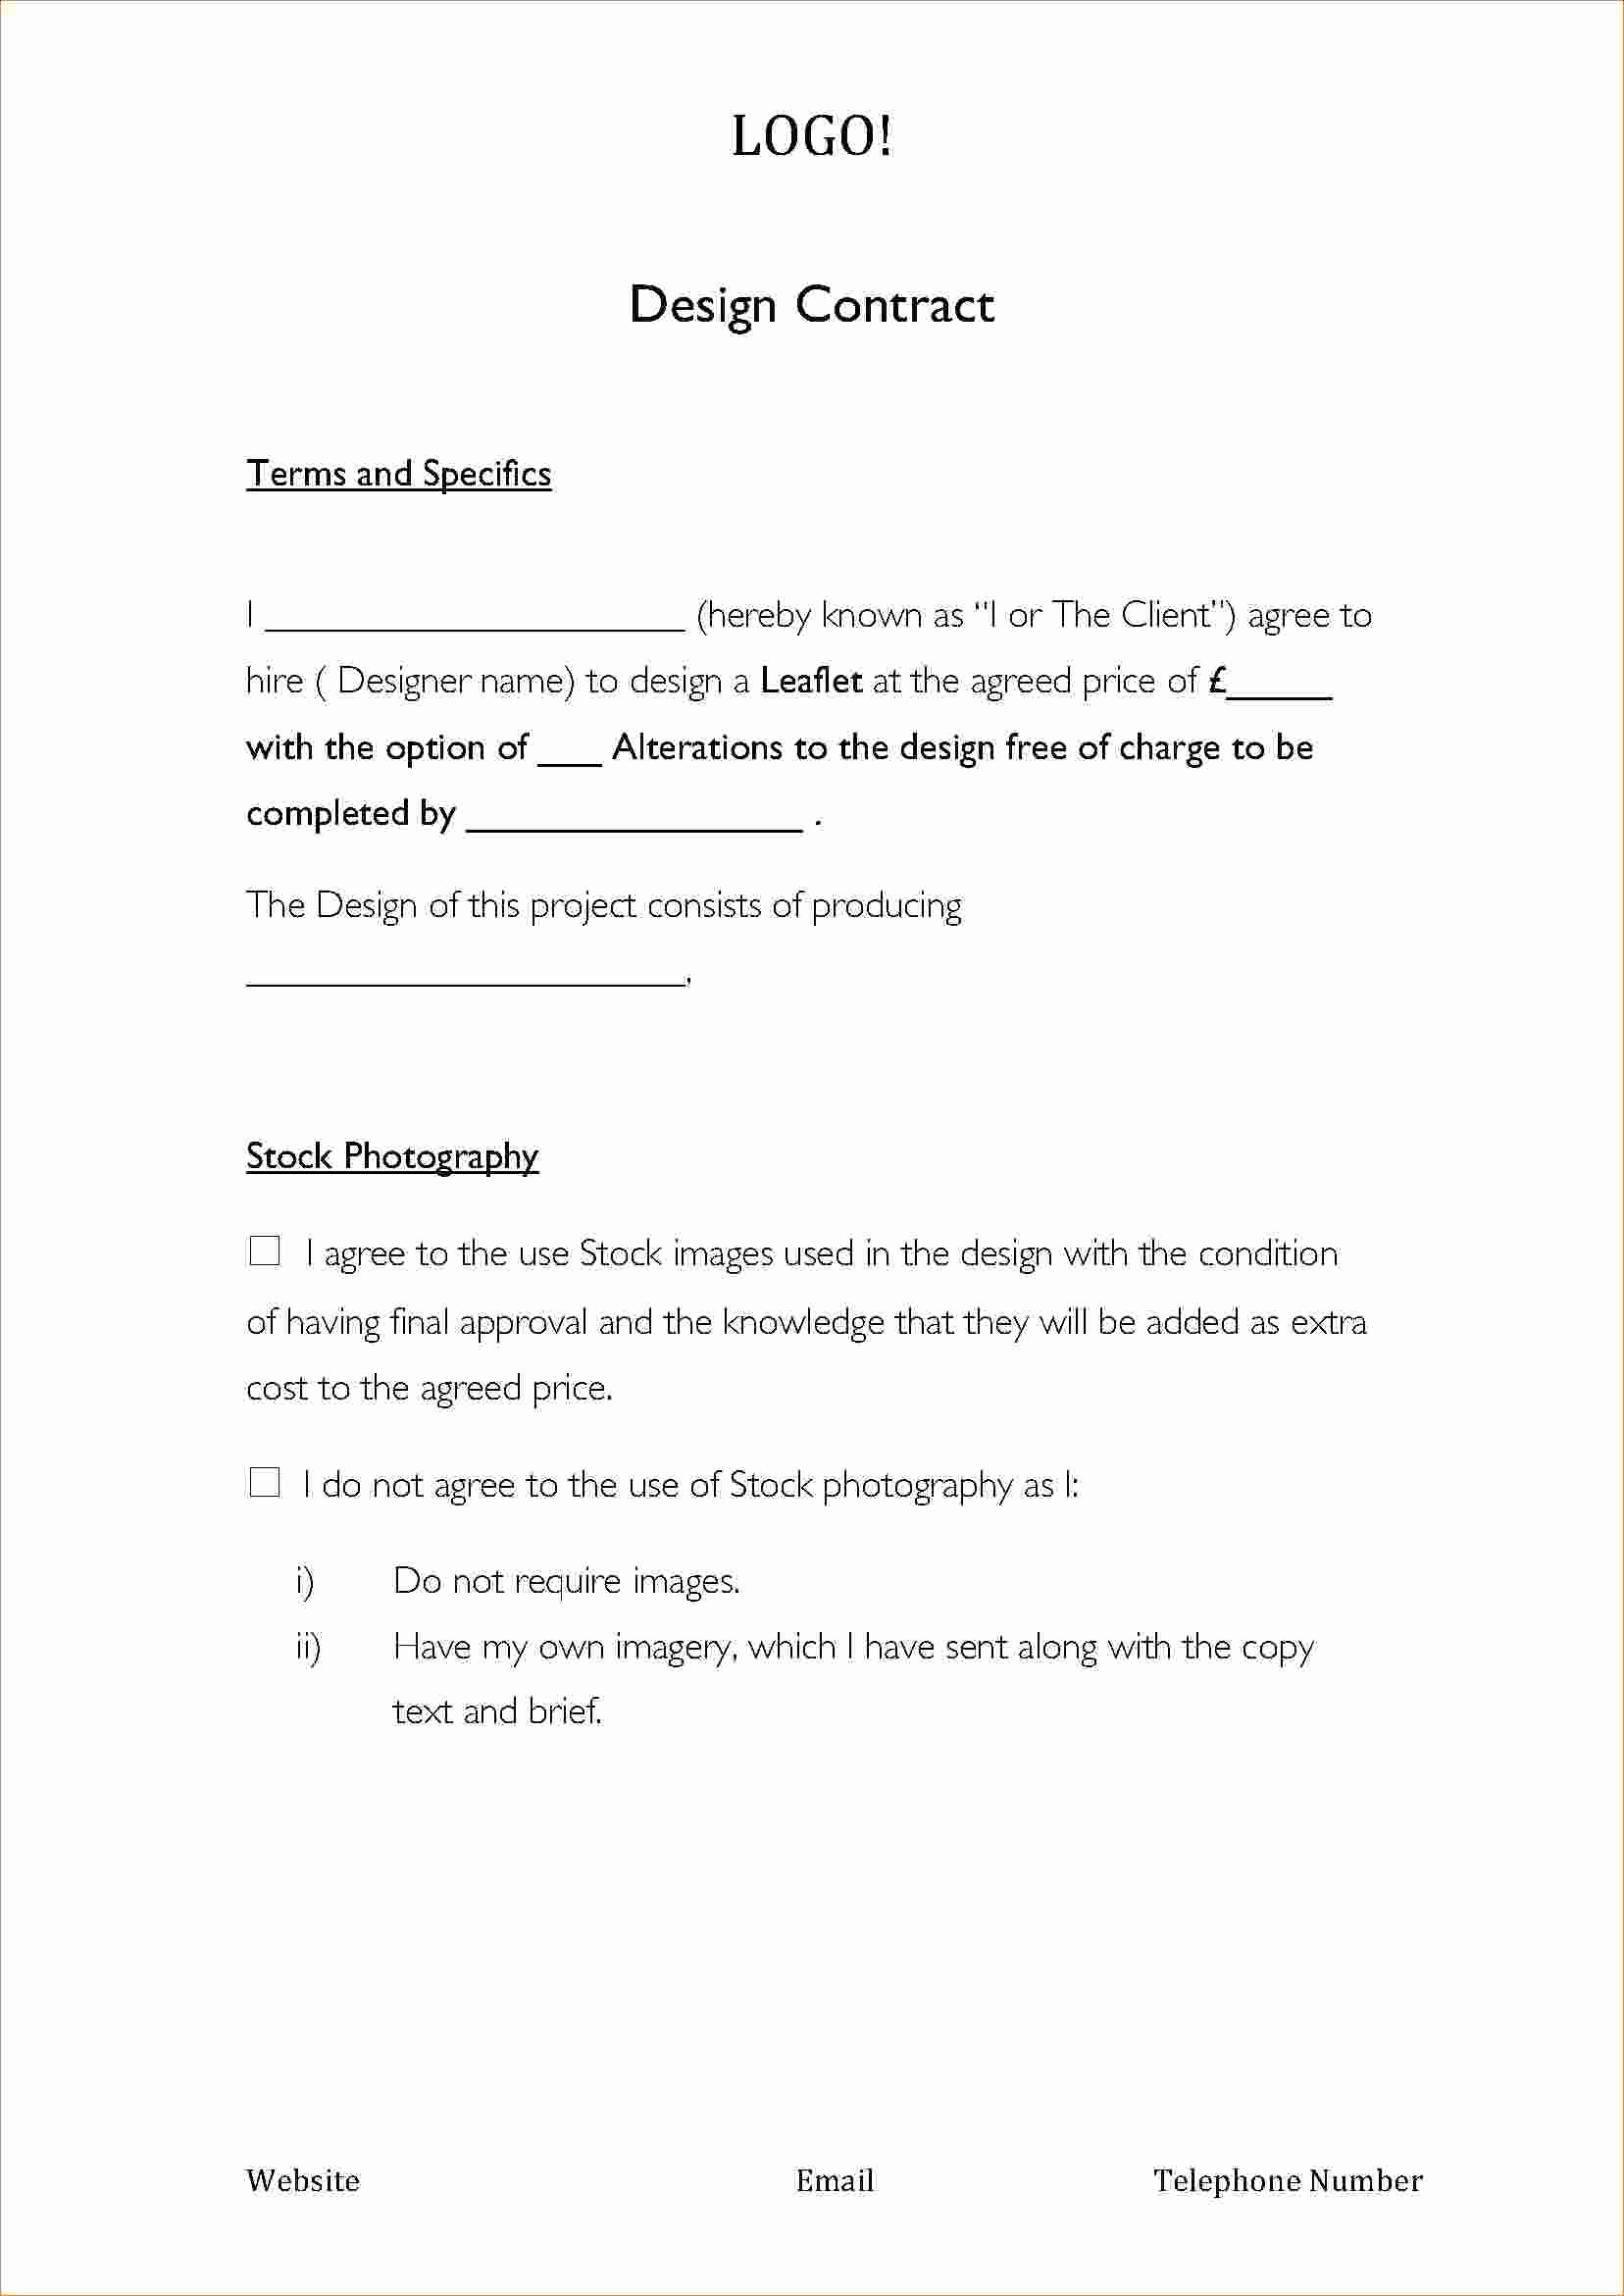 Graphic Design Contract Template Beautiful Logo Contract Template